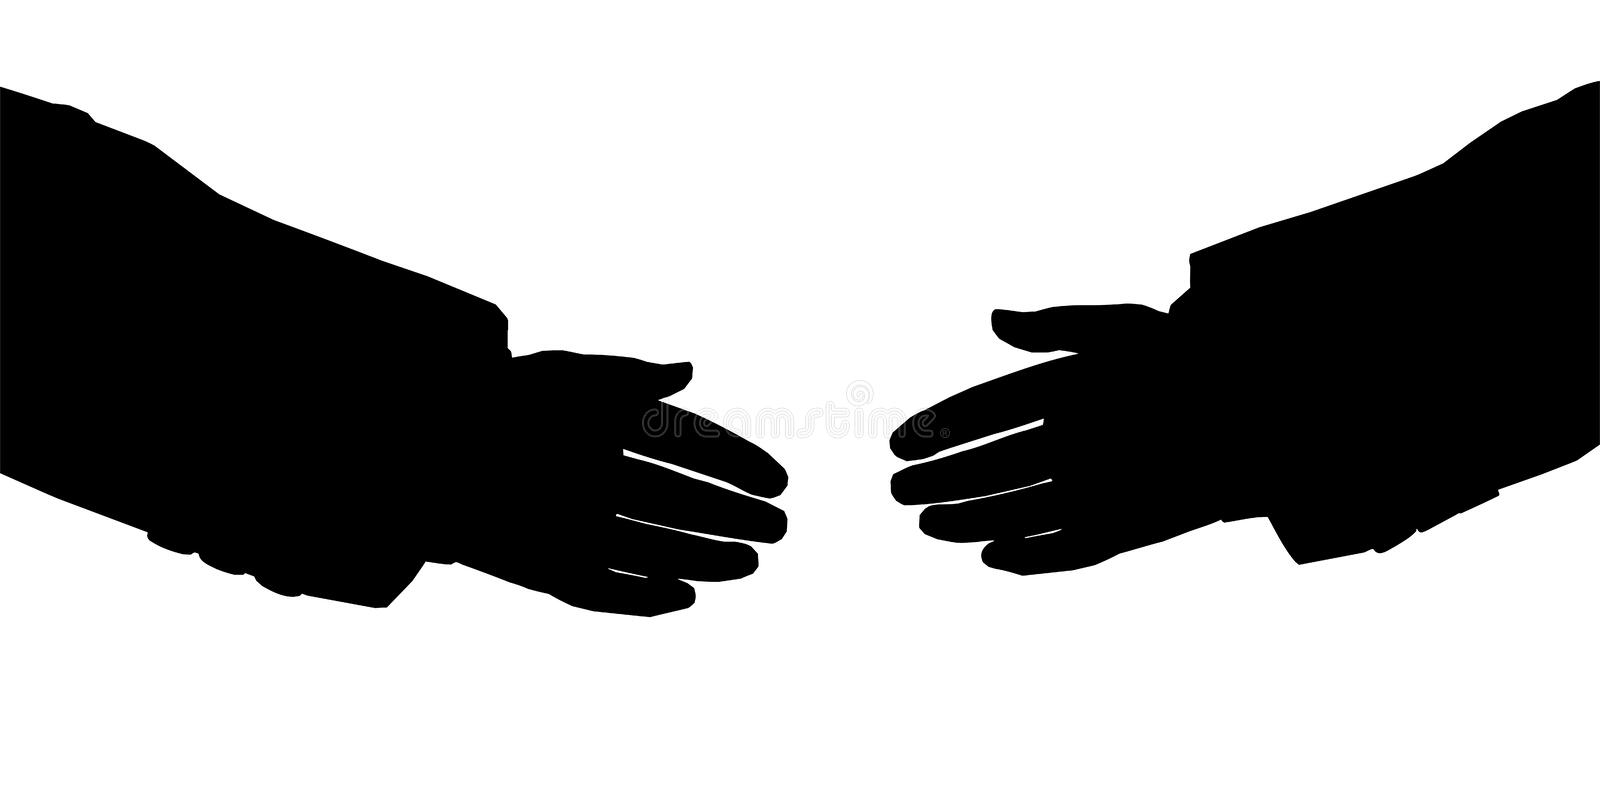 Business hands silhouette royalty free illustration